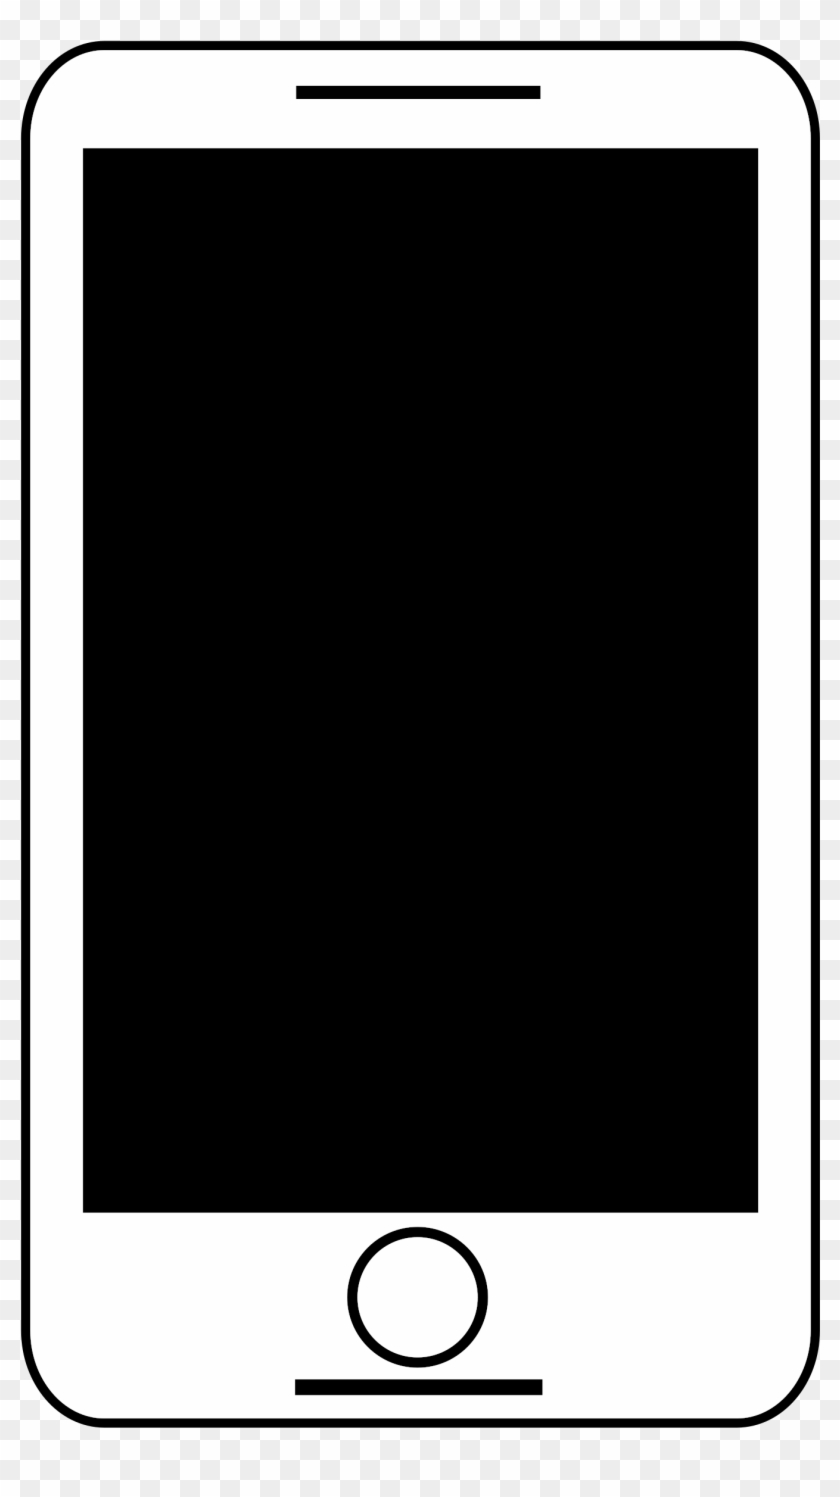 Animated Smart Phone Black And White - Clip Art Smartphone #2436